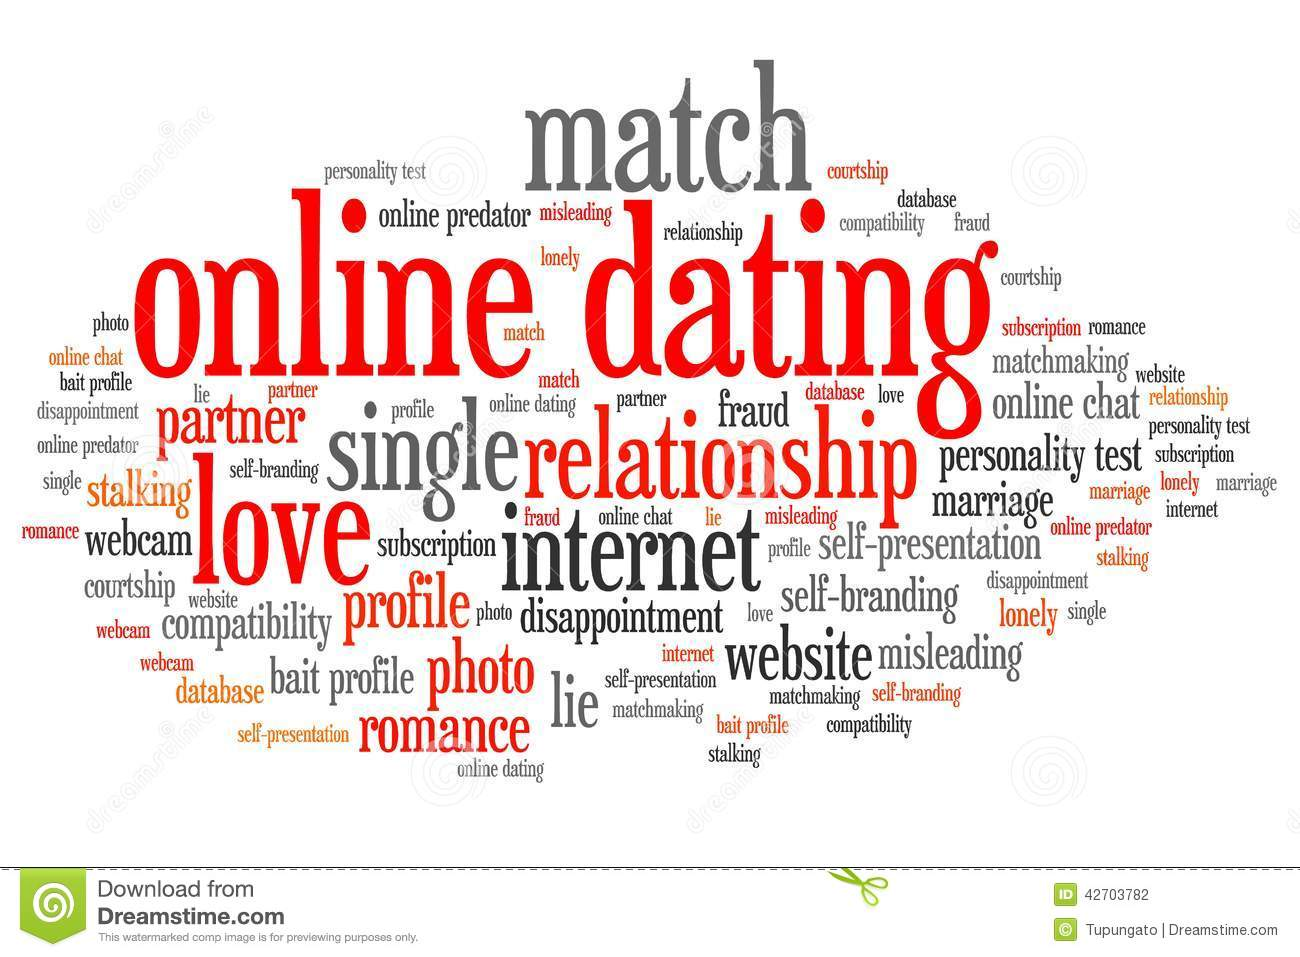 asheboro online hookup & dating Asheboro's links and messages, banking, north carolina, area map, randolph county, hotels, motels, bed & breakfast, webmaster greg lundy, laurie lundy.